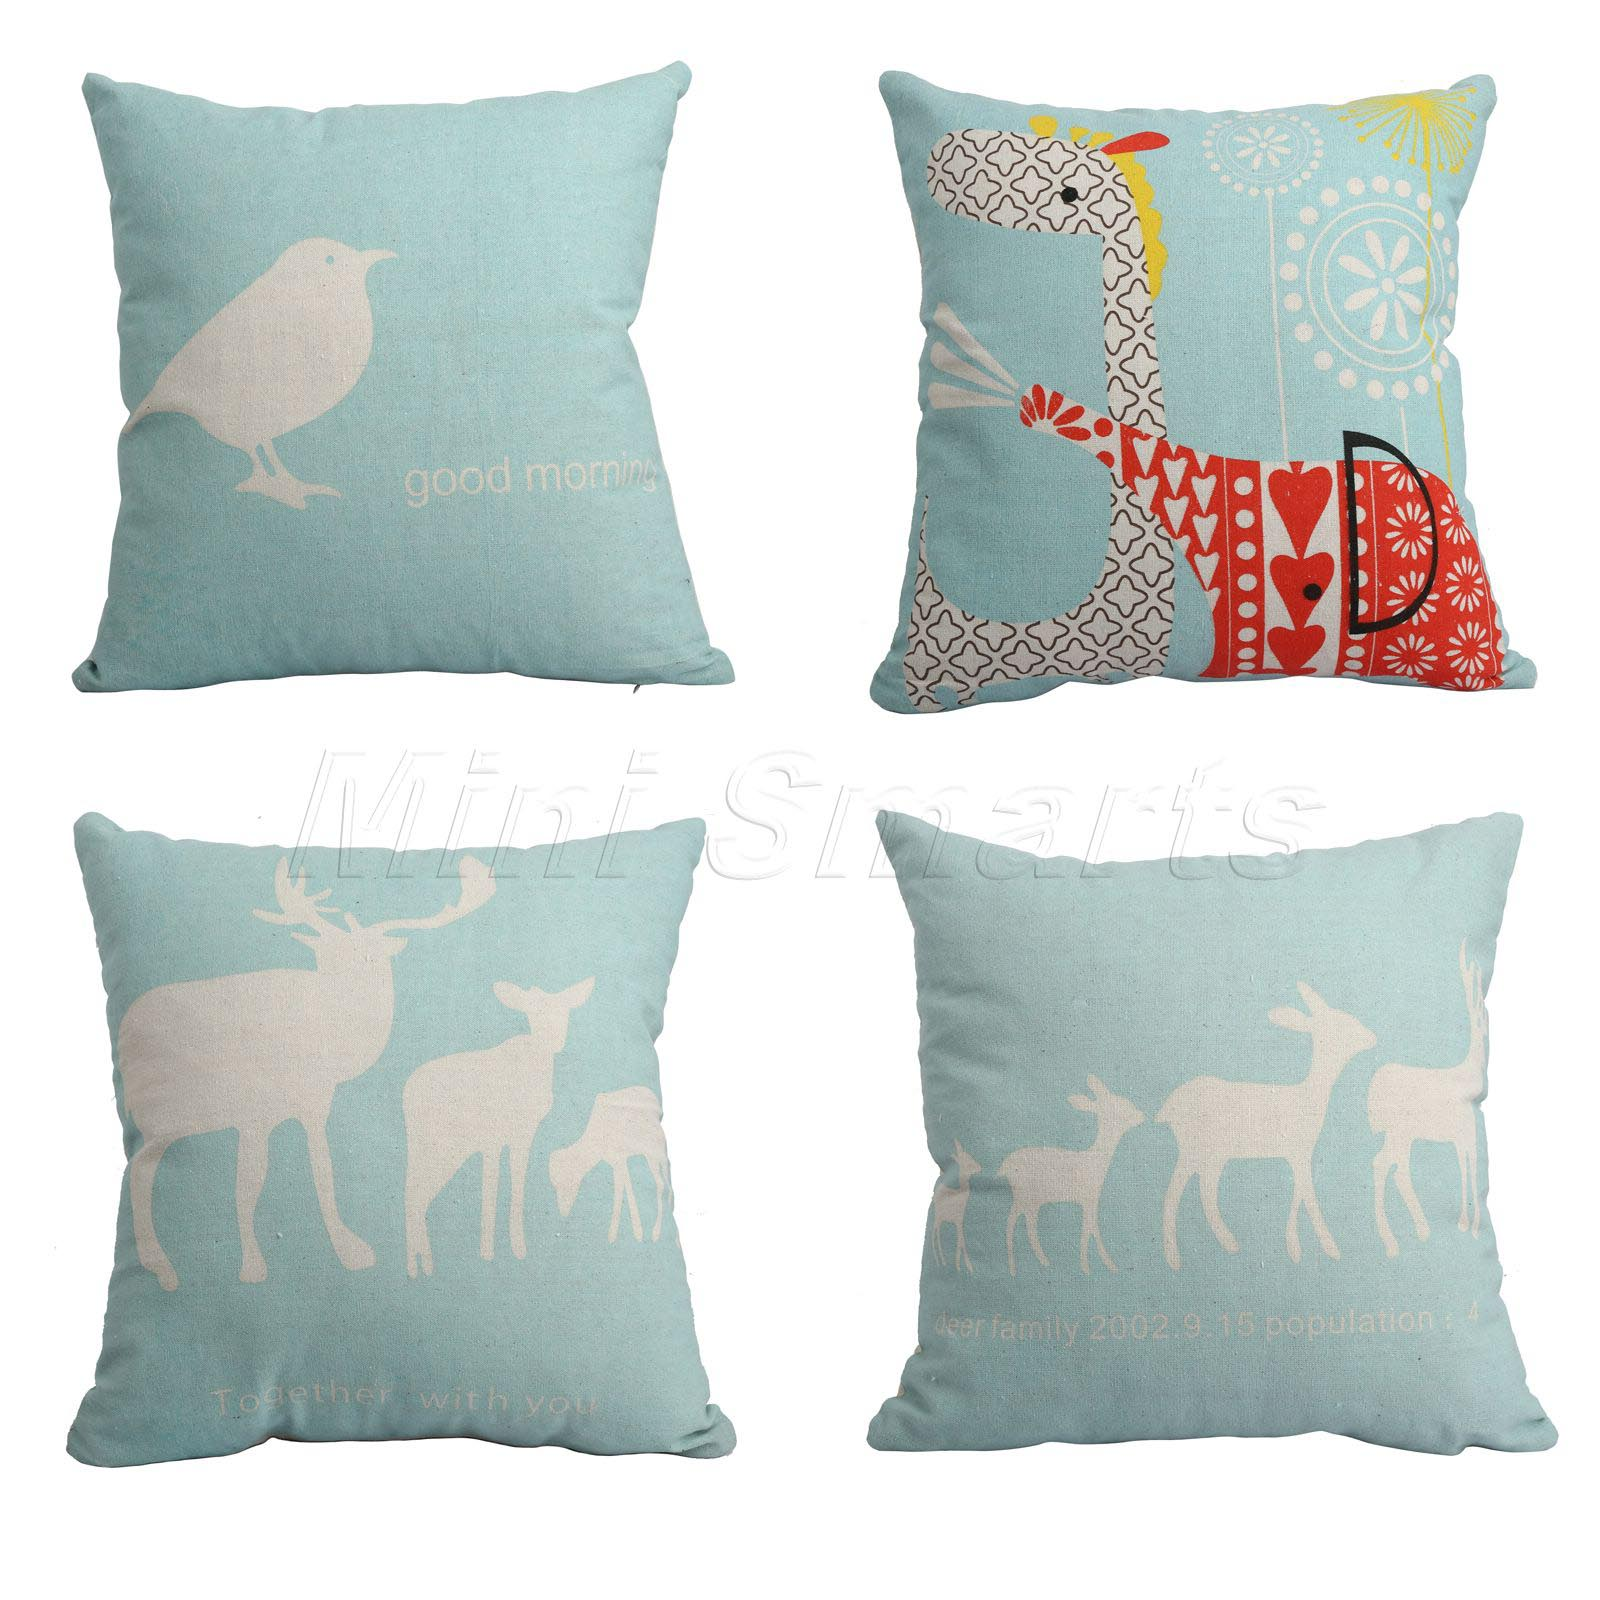 Light Blue Decorative Pillows